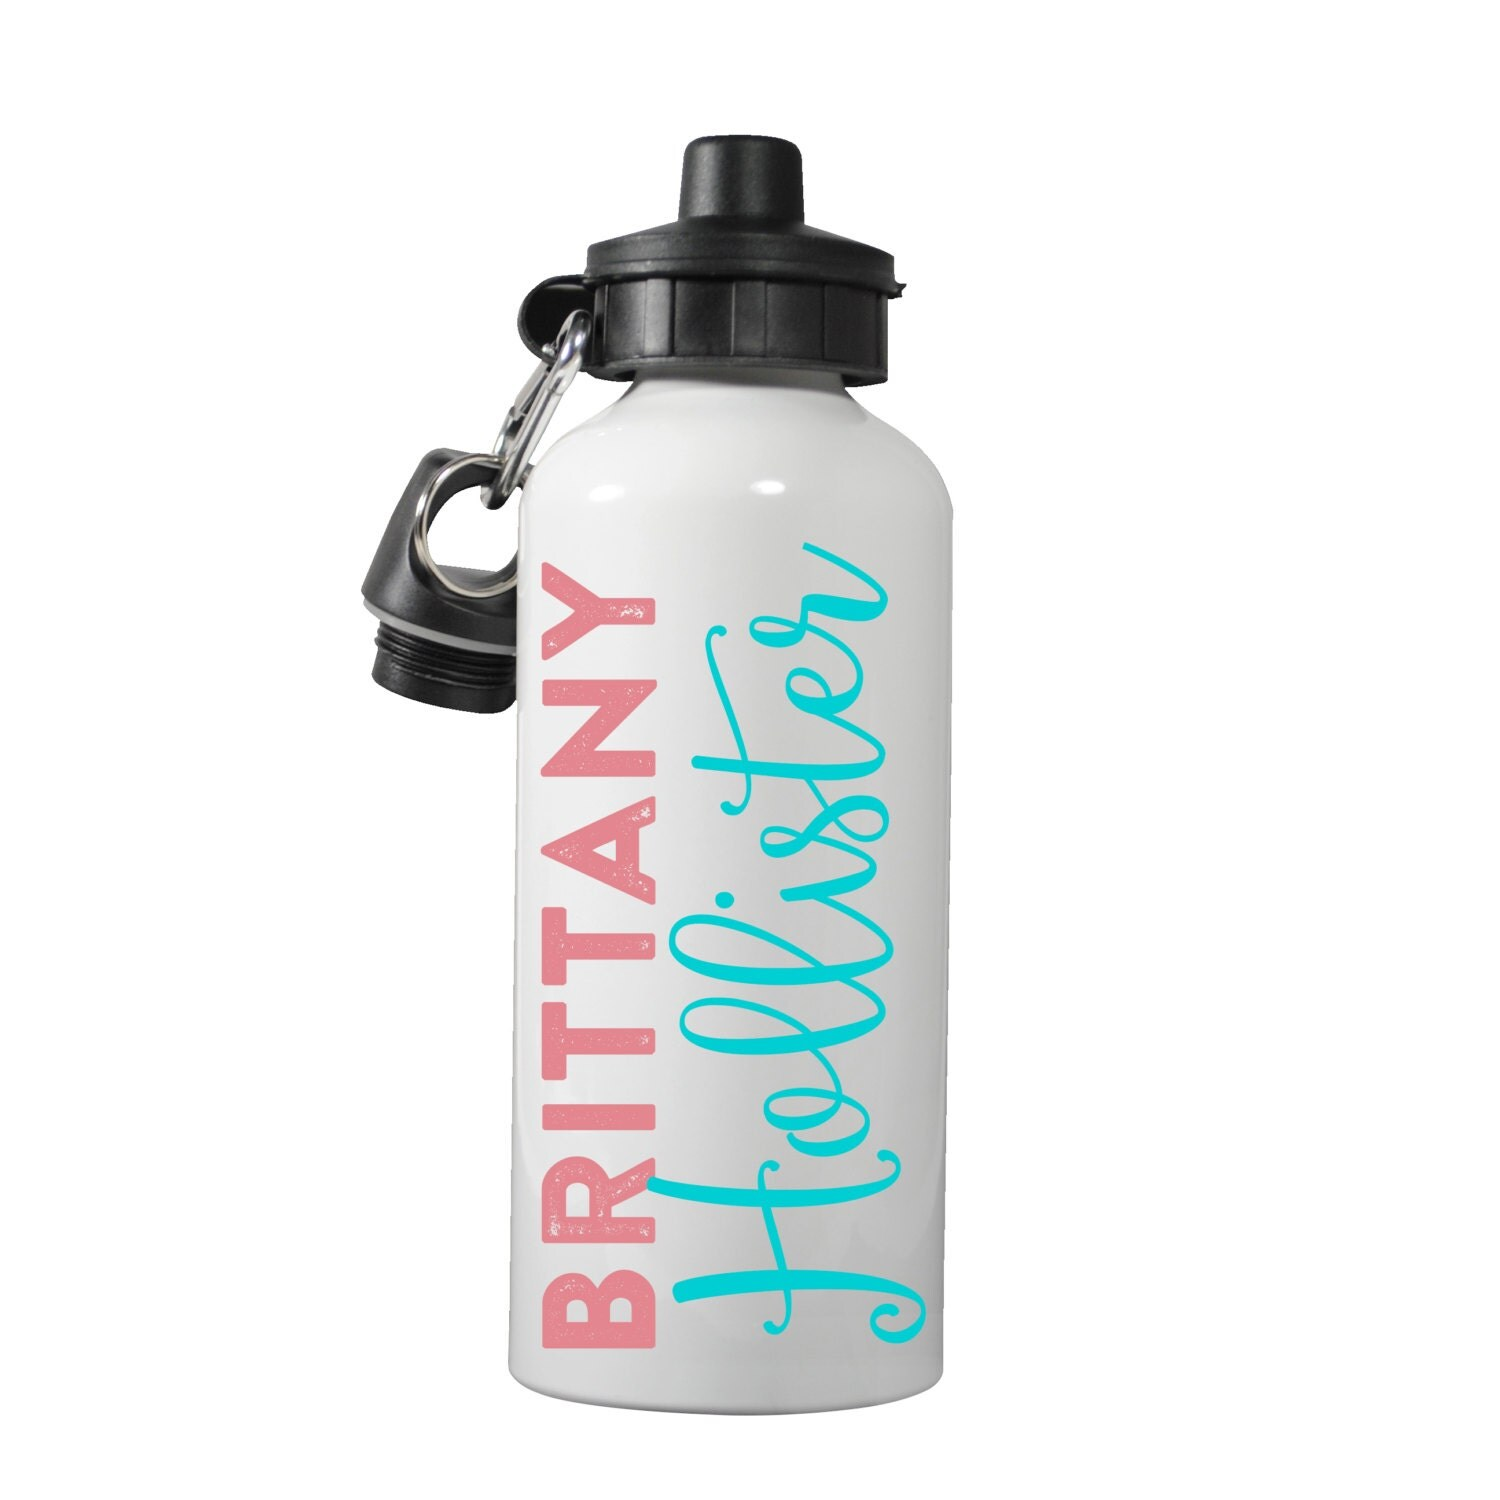 Name personalized water bottle personalized name water for Create custom water bottles